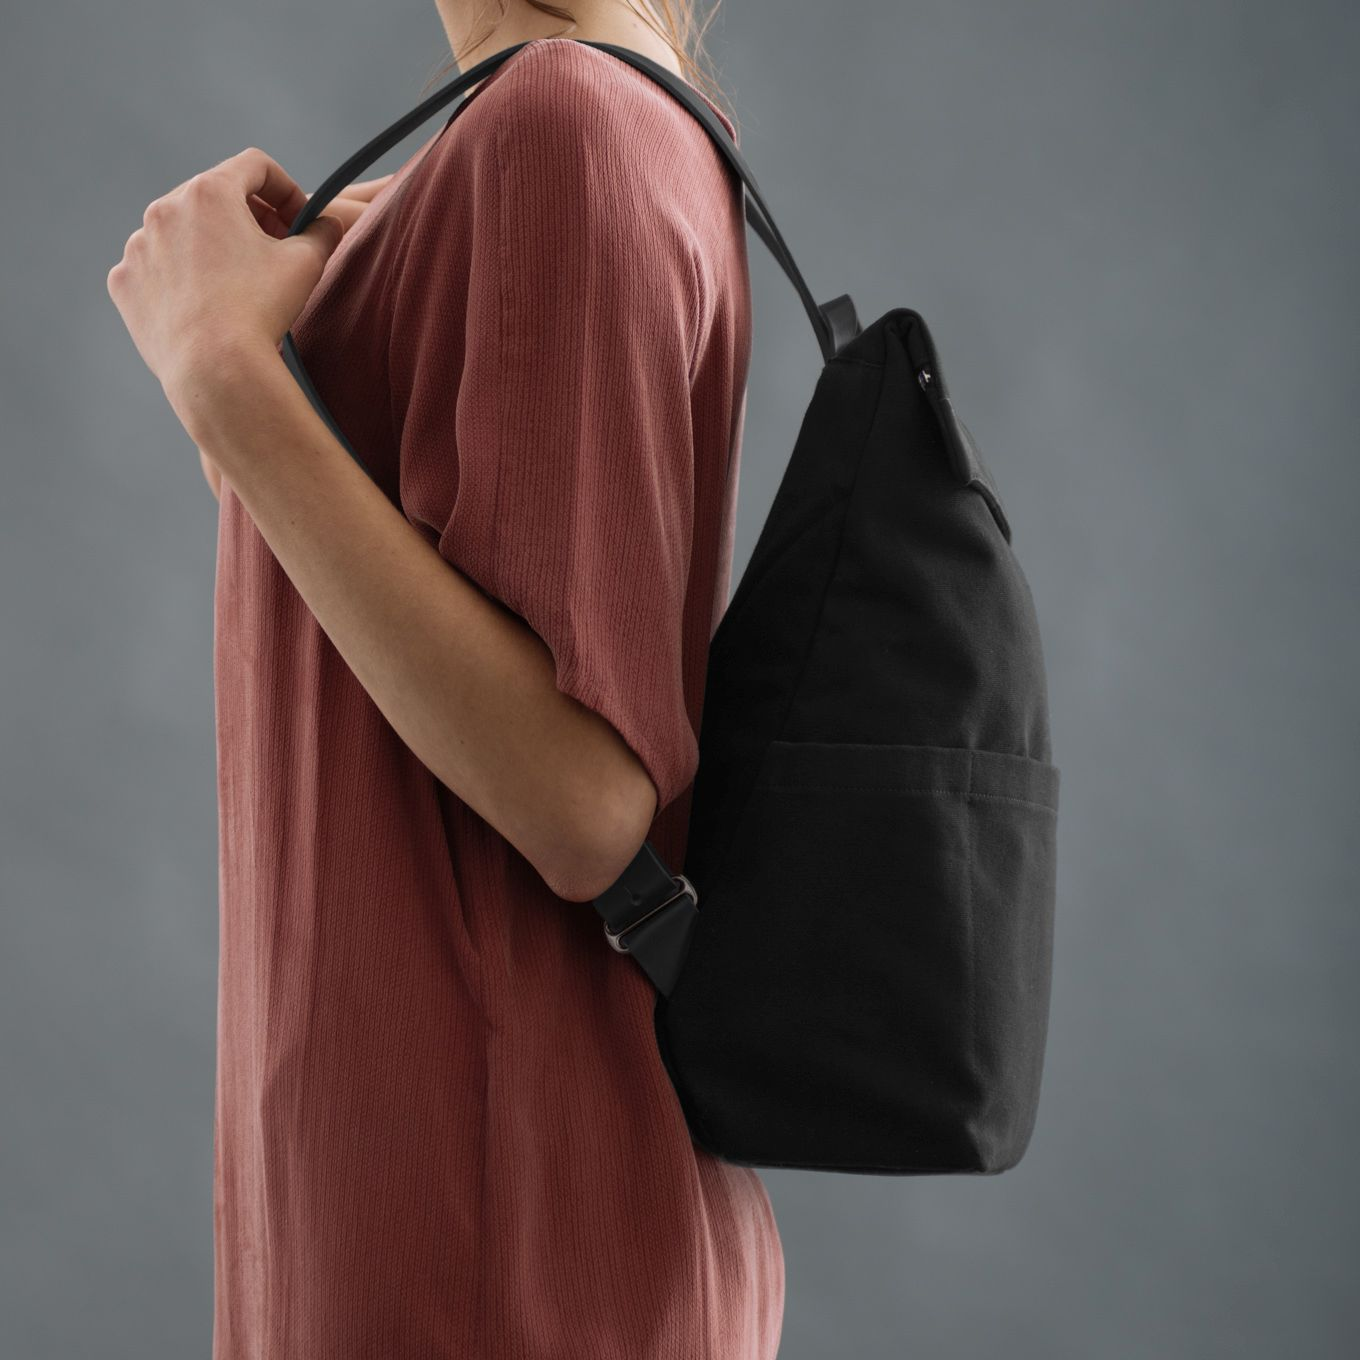 424_Backpack-Men-Canvas-Leather-integrated Laptop Case